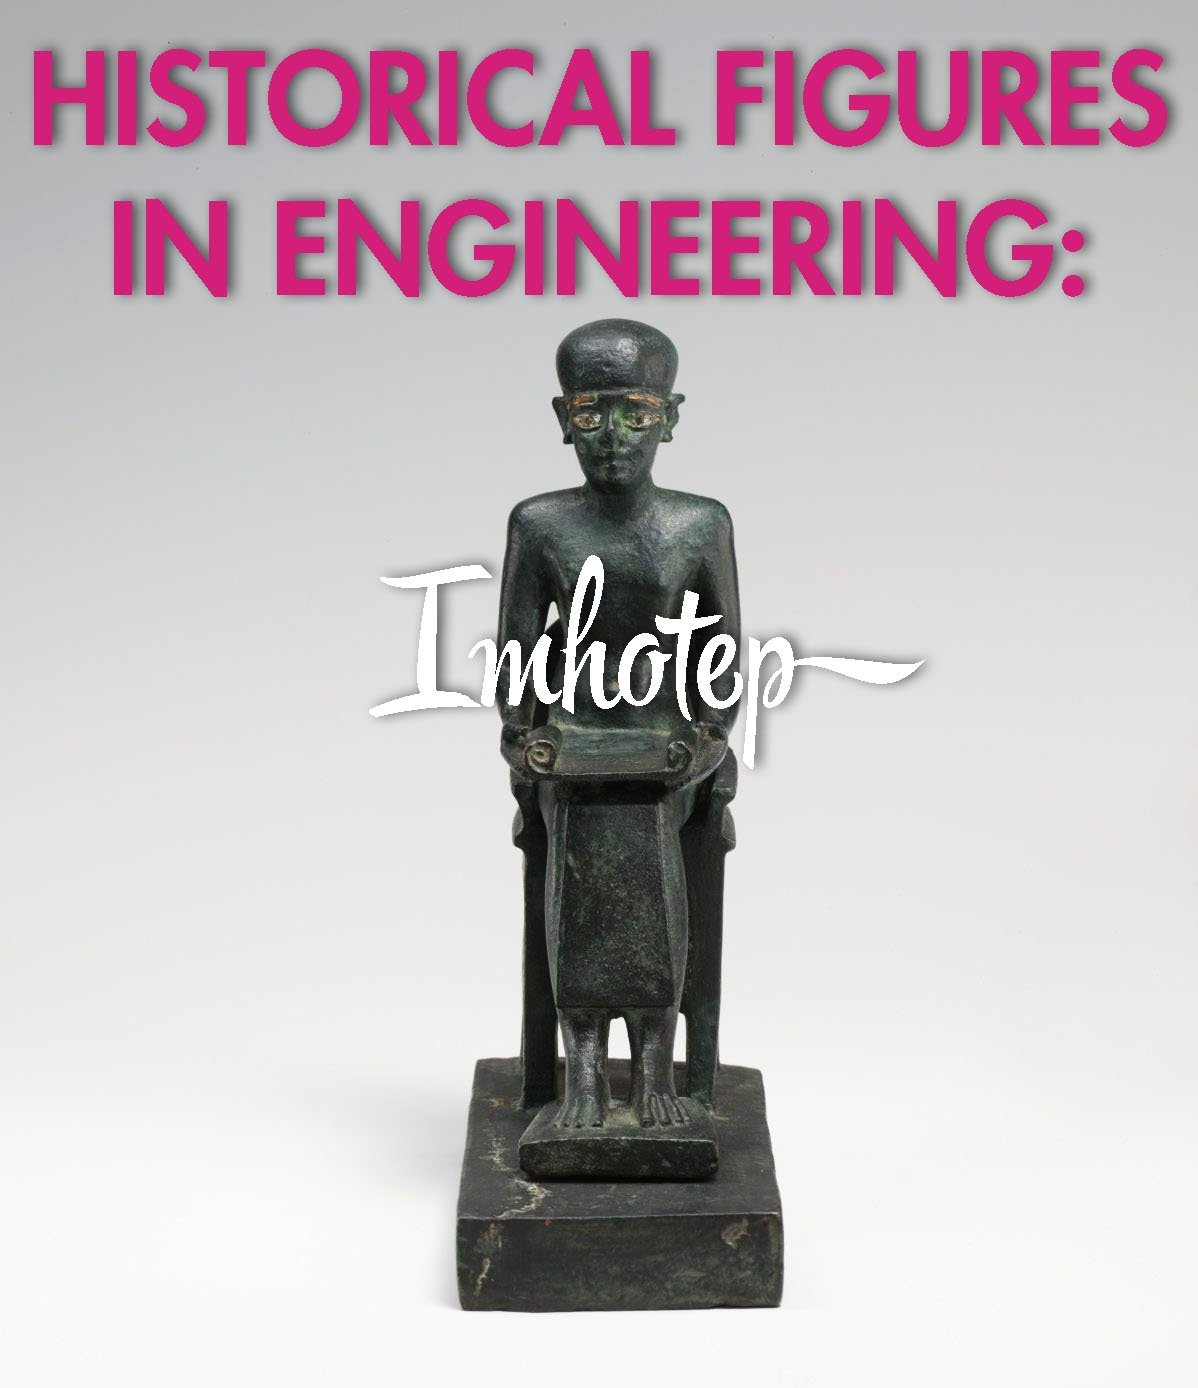 historical figures in engineering- Imhotep